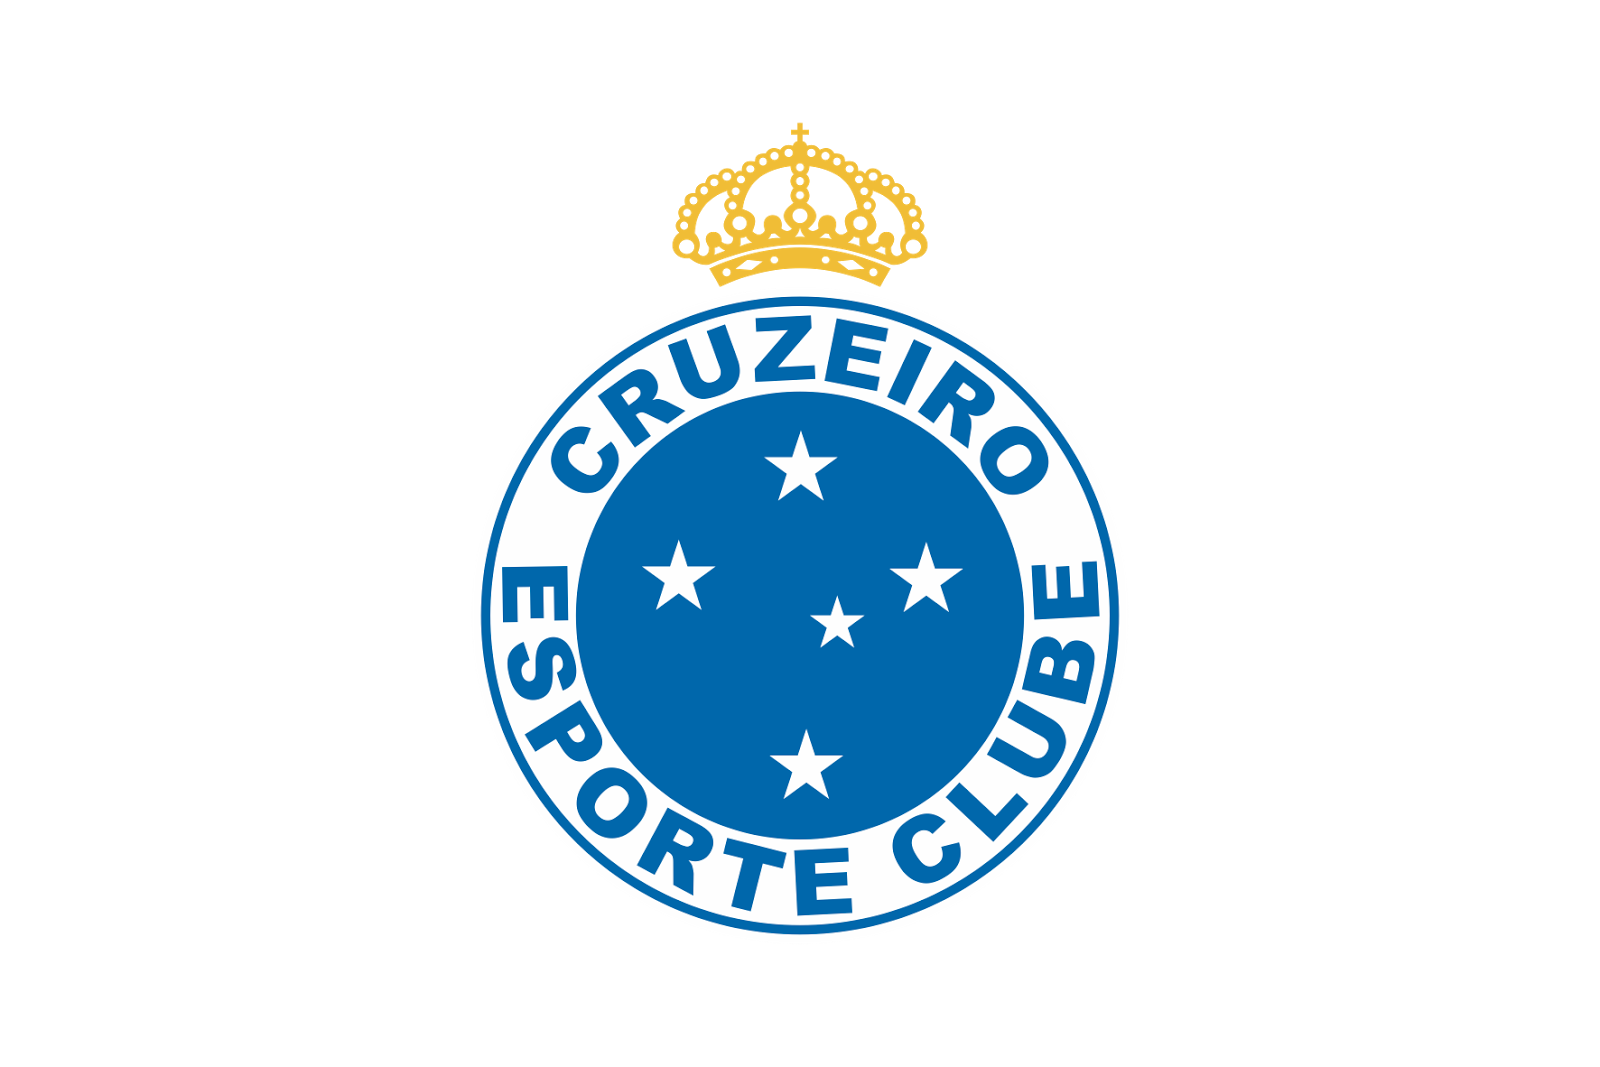 Logo cruzeiro png clipart images gallery for free download.